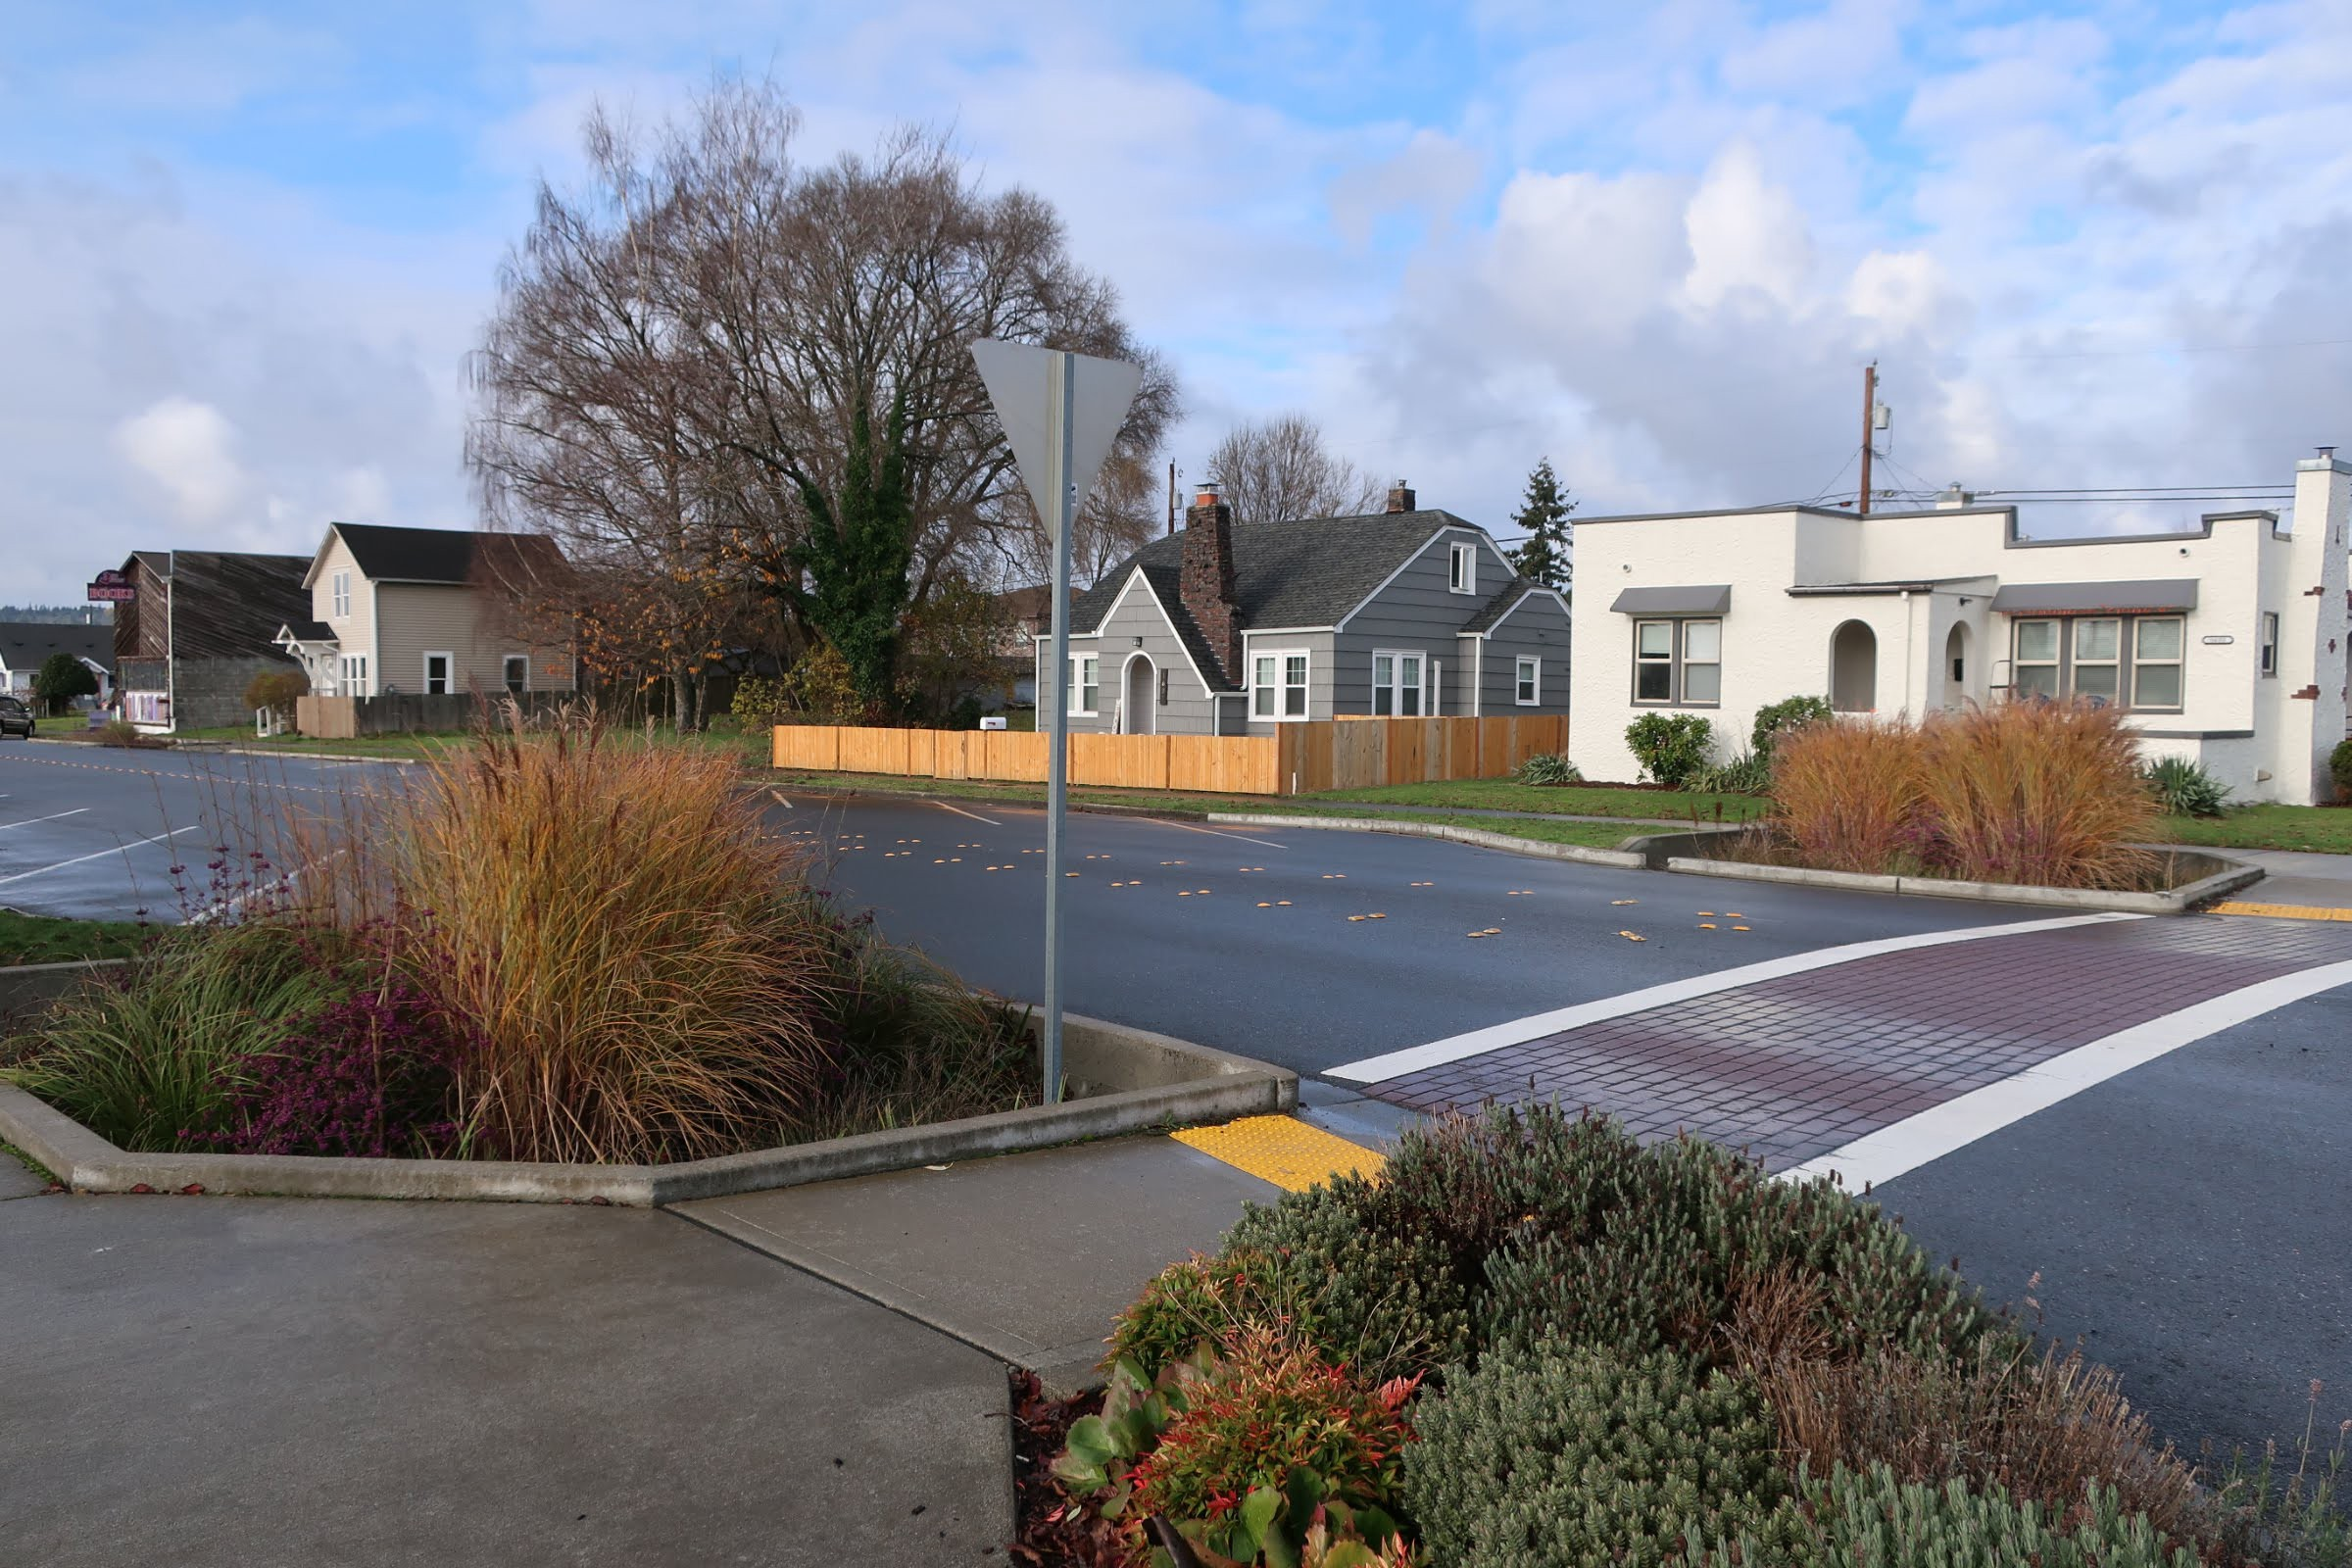 Photo of an intersection on Third Street in Marysville, with the bioretention cells in the foreground.